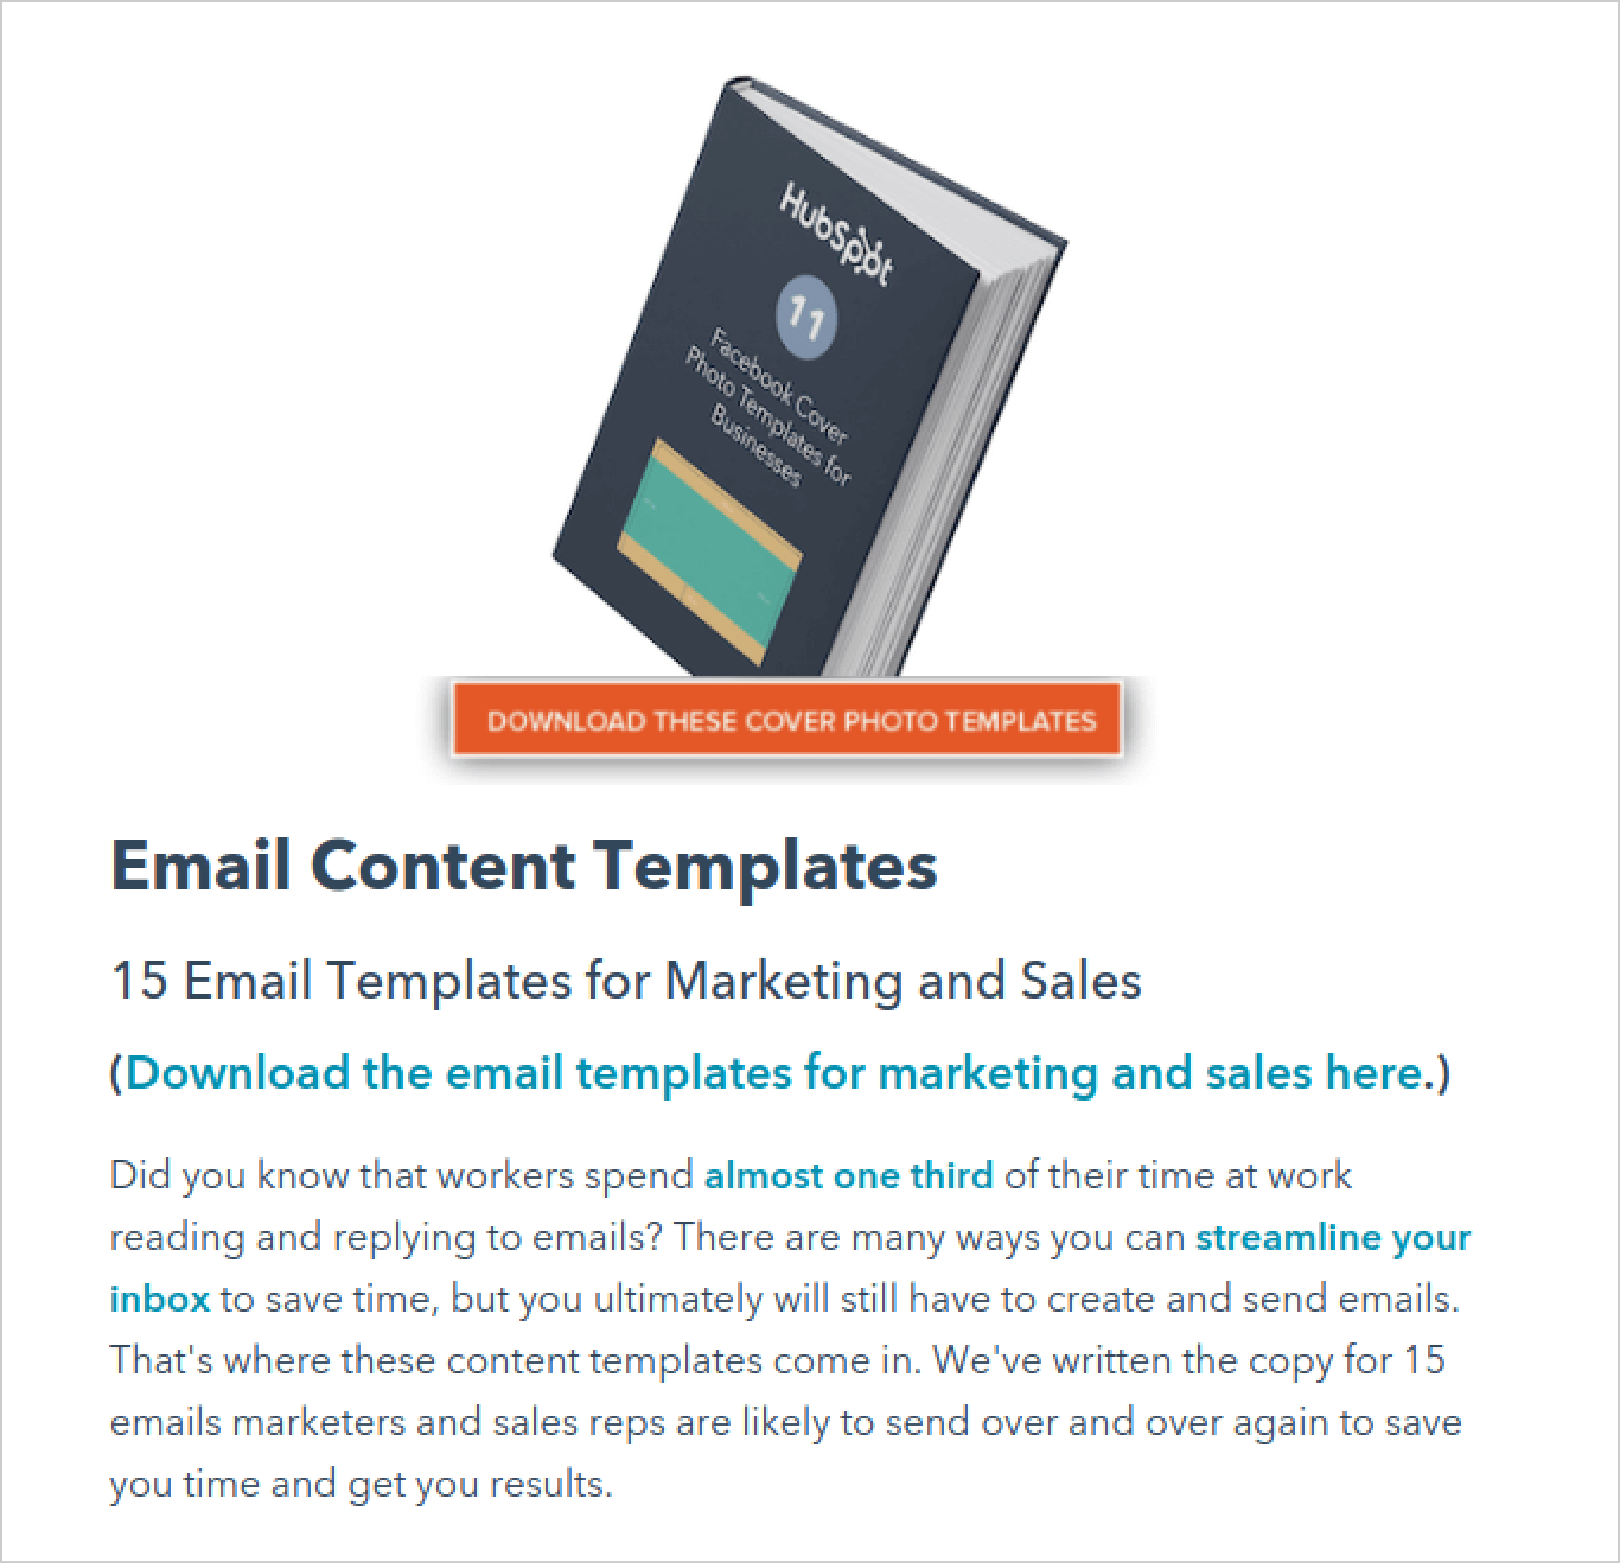 HubSpot Free Resources Templates